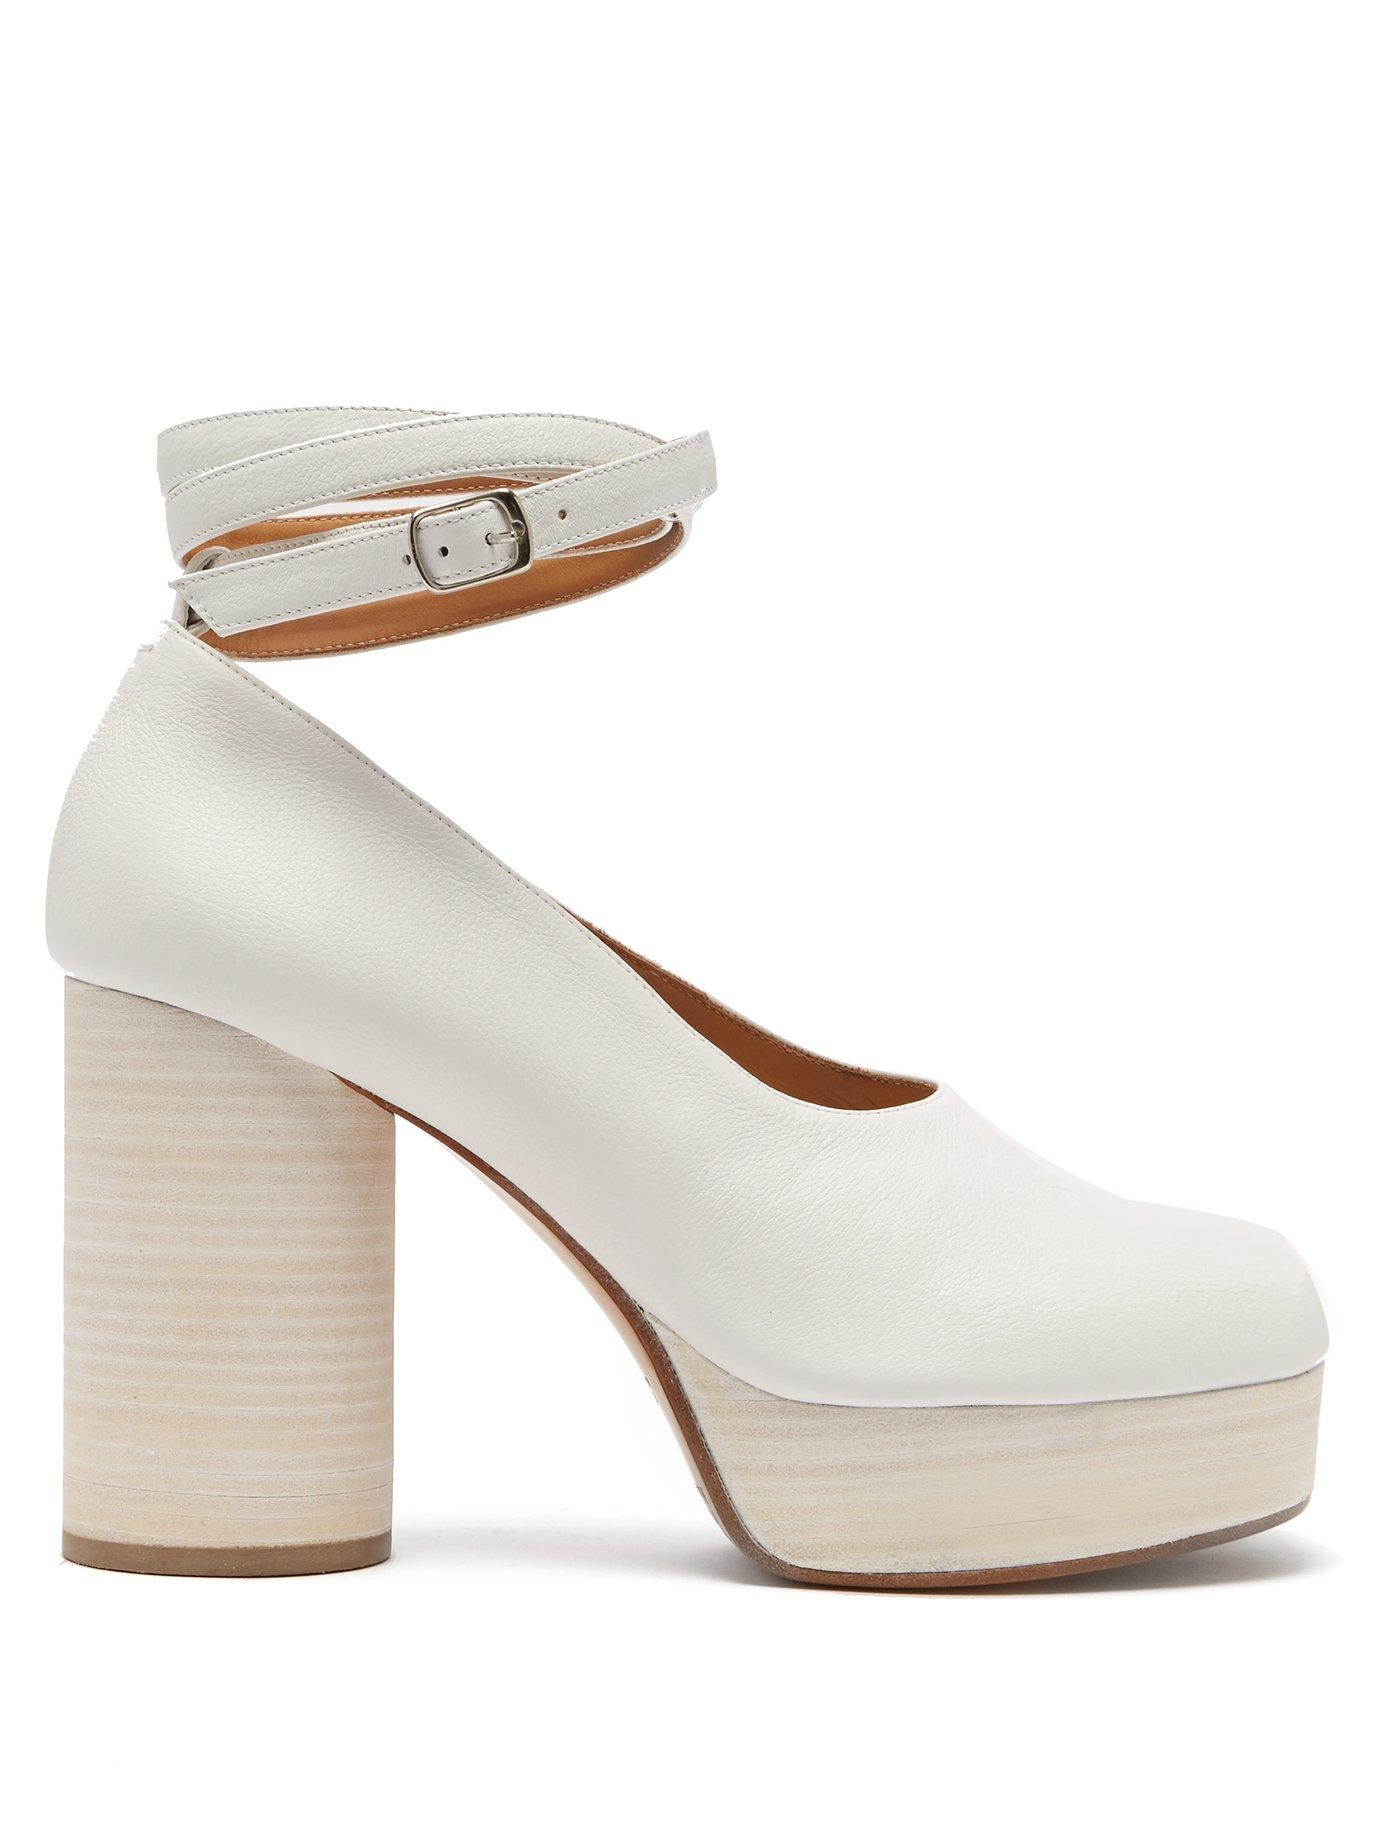 f5bf9e4ce69b Maison Margiela Tabi Ankle Tie Leather Pumps in White - Lyst